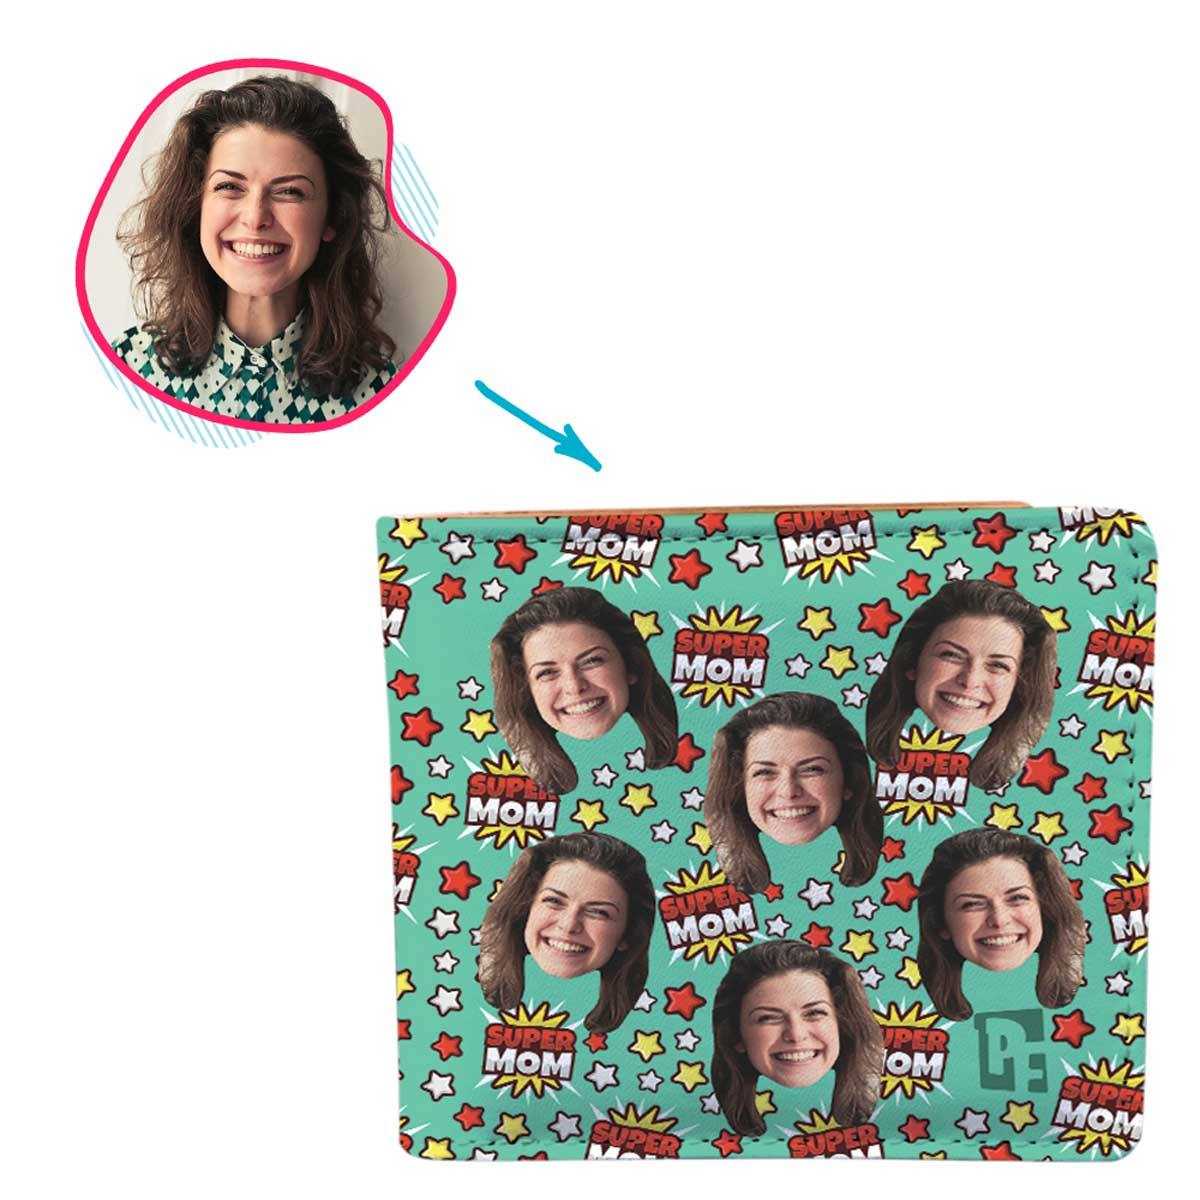 mint Super Mom wallet personalized with photo of face printed on it